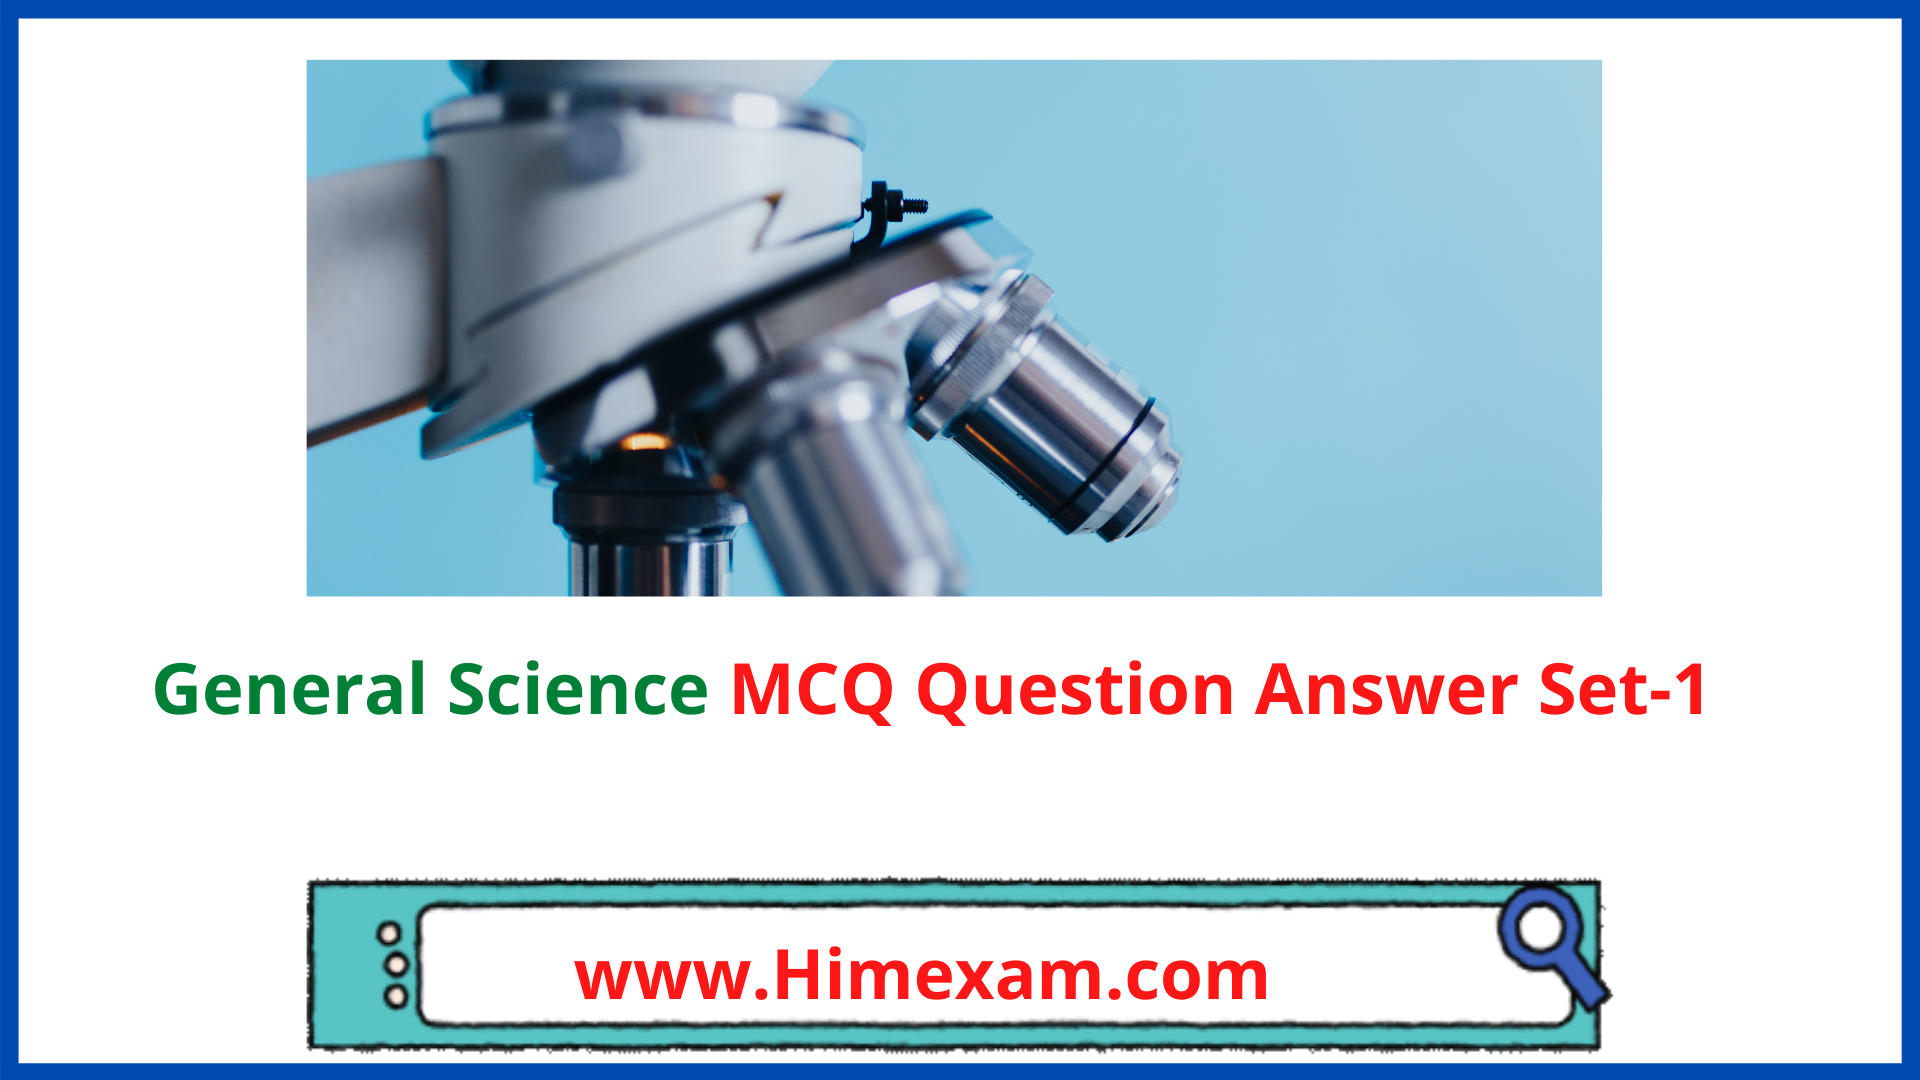 General Science MCQ Question Answer Set-1